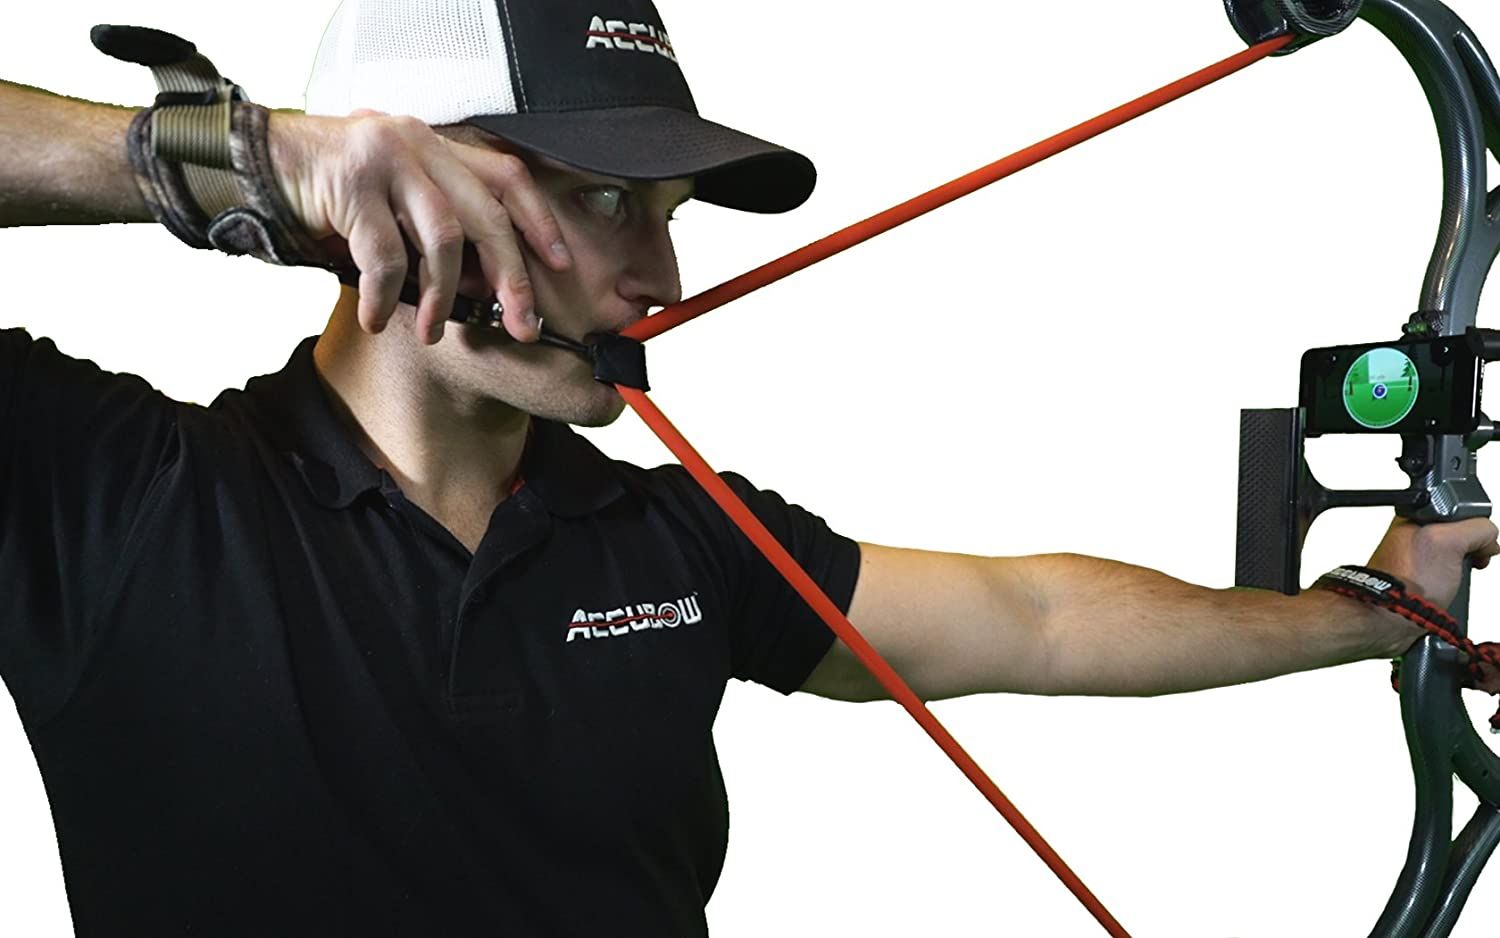 a0eb9d20a AccuBow Bow Hunting Archery Trainer with Adjustable Resistance